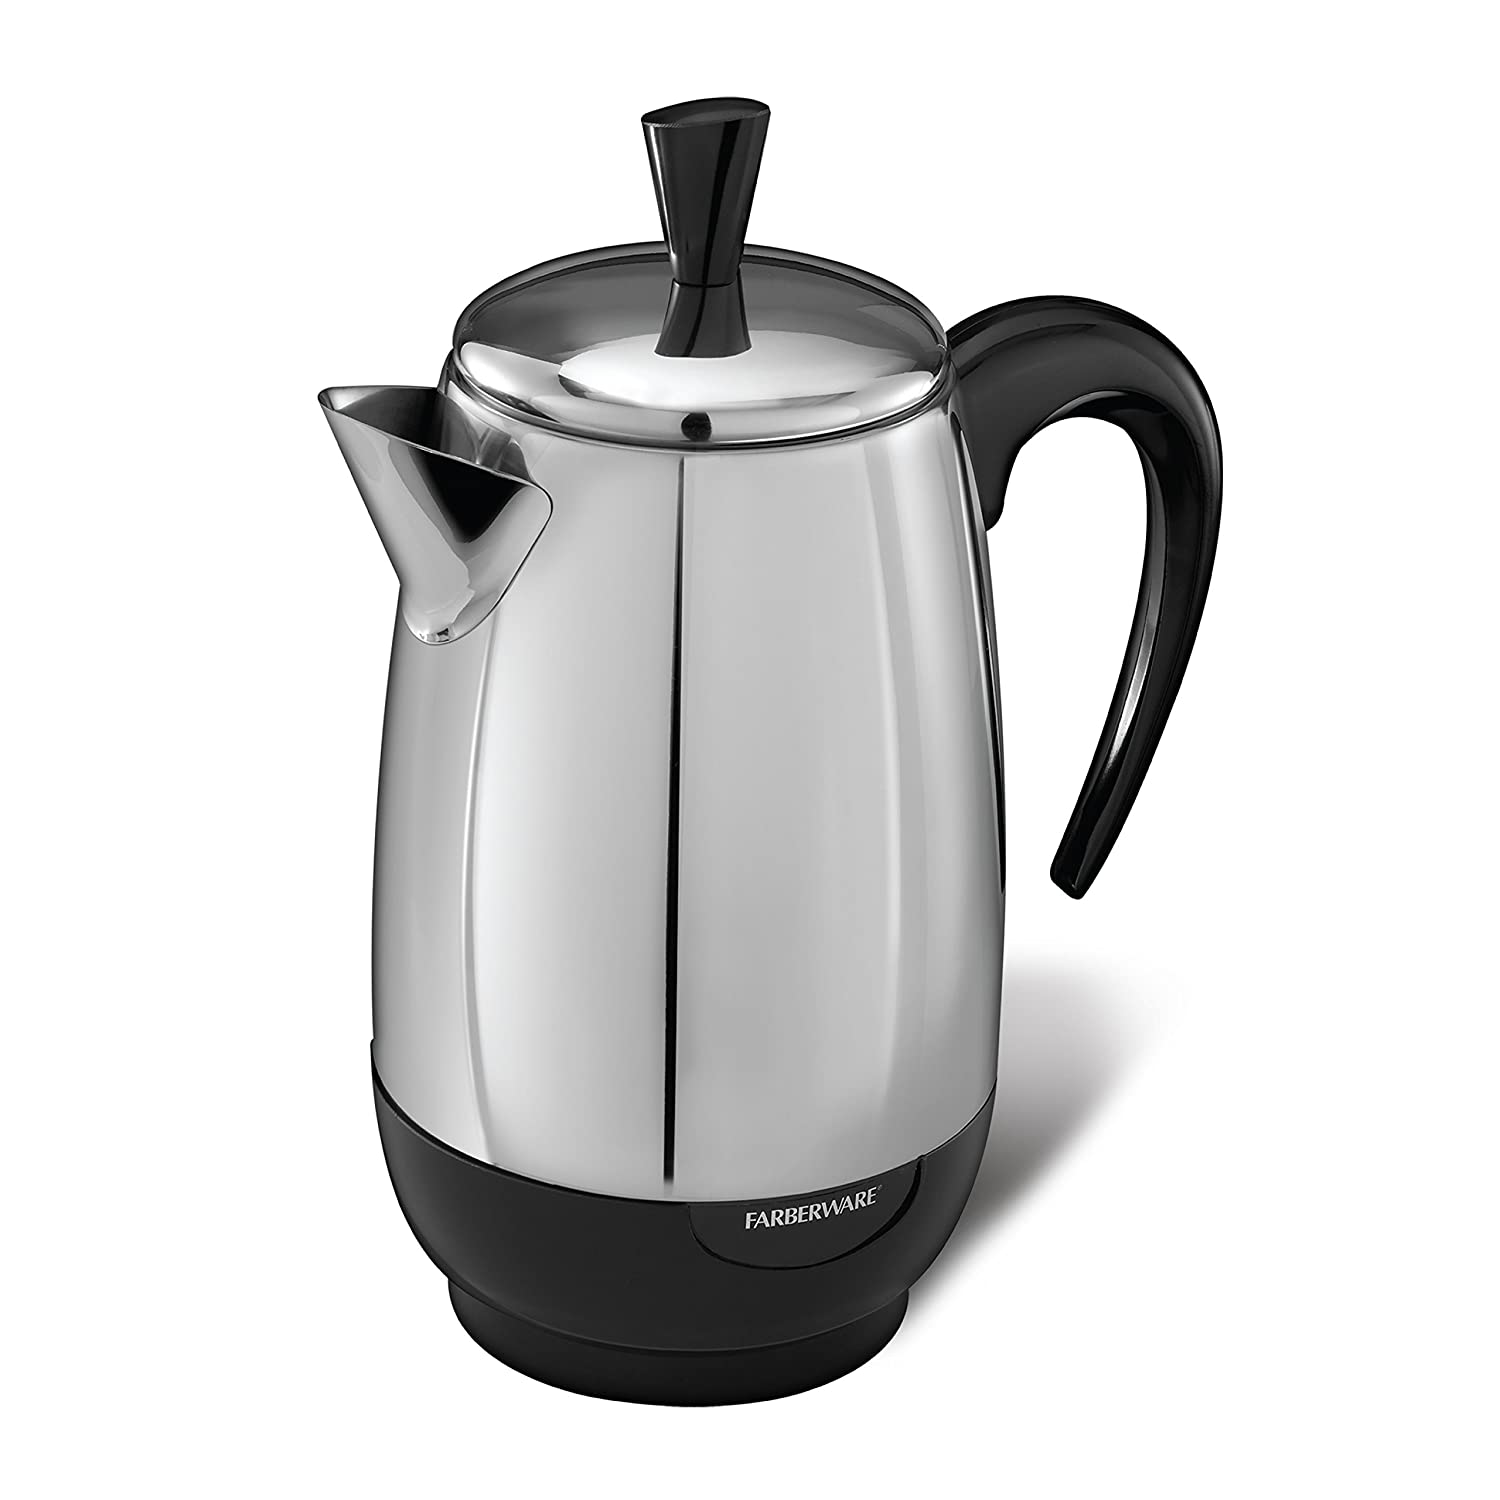 Farberware 8-Cup Percolator, Stainless Steel, FCP280 Spectrum Brands Automatic